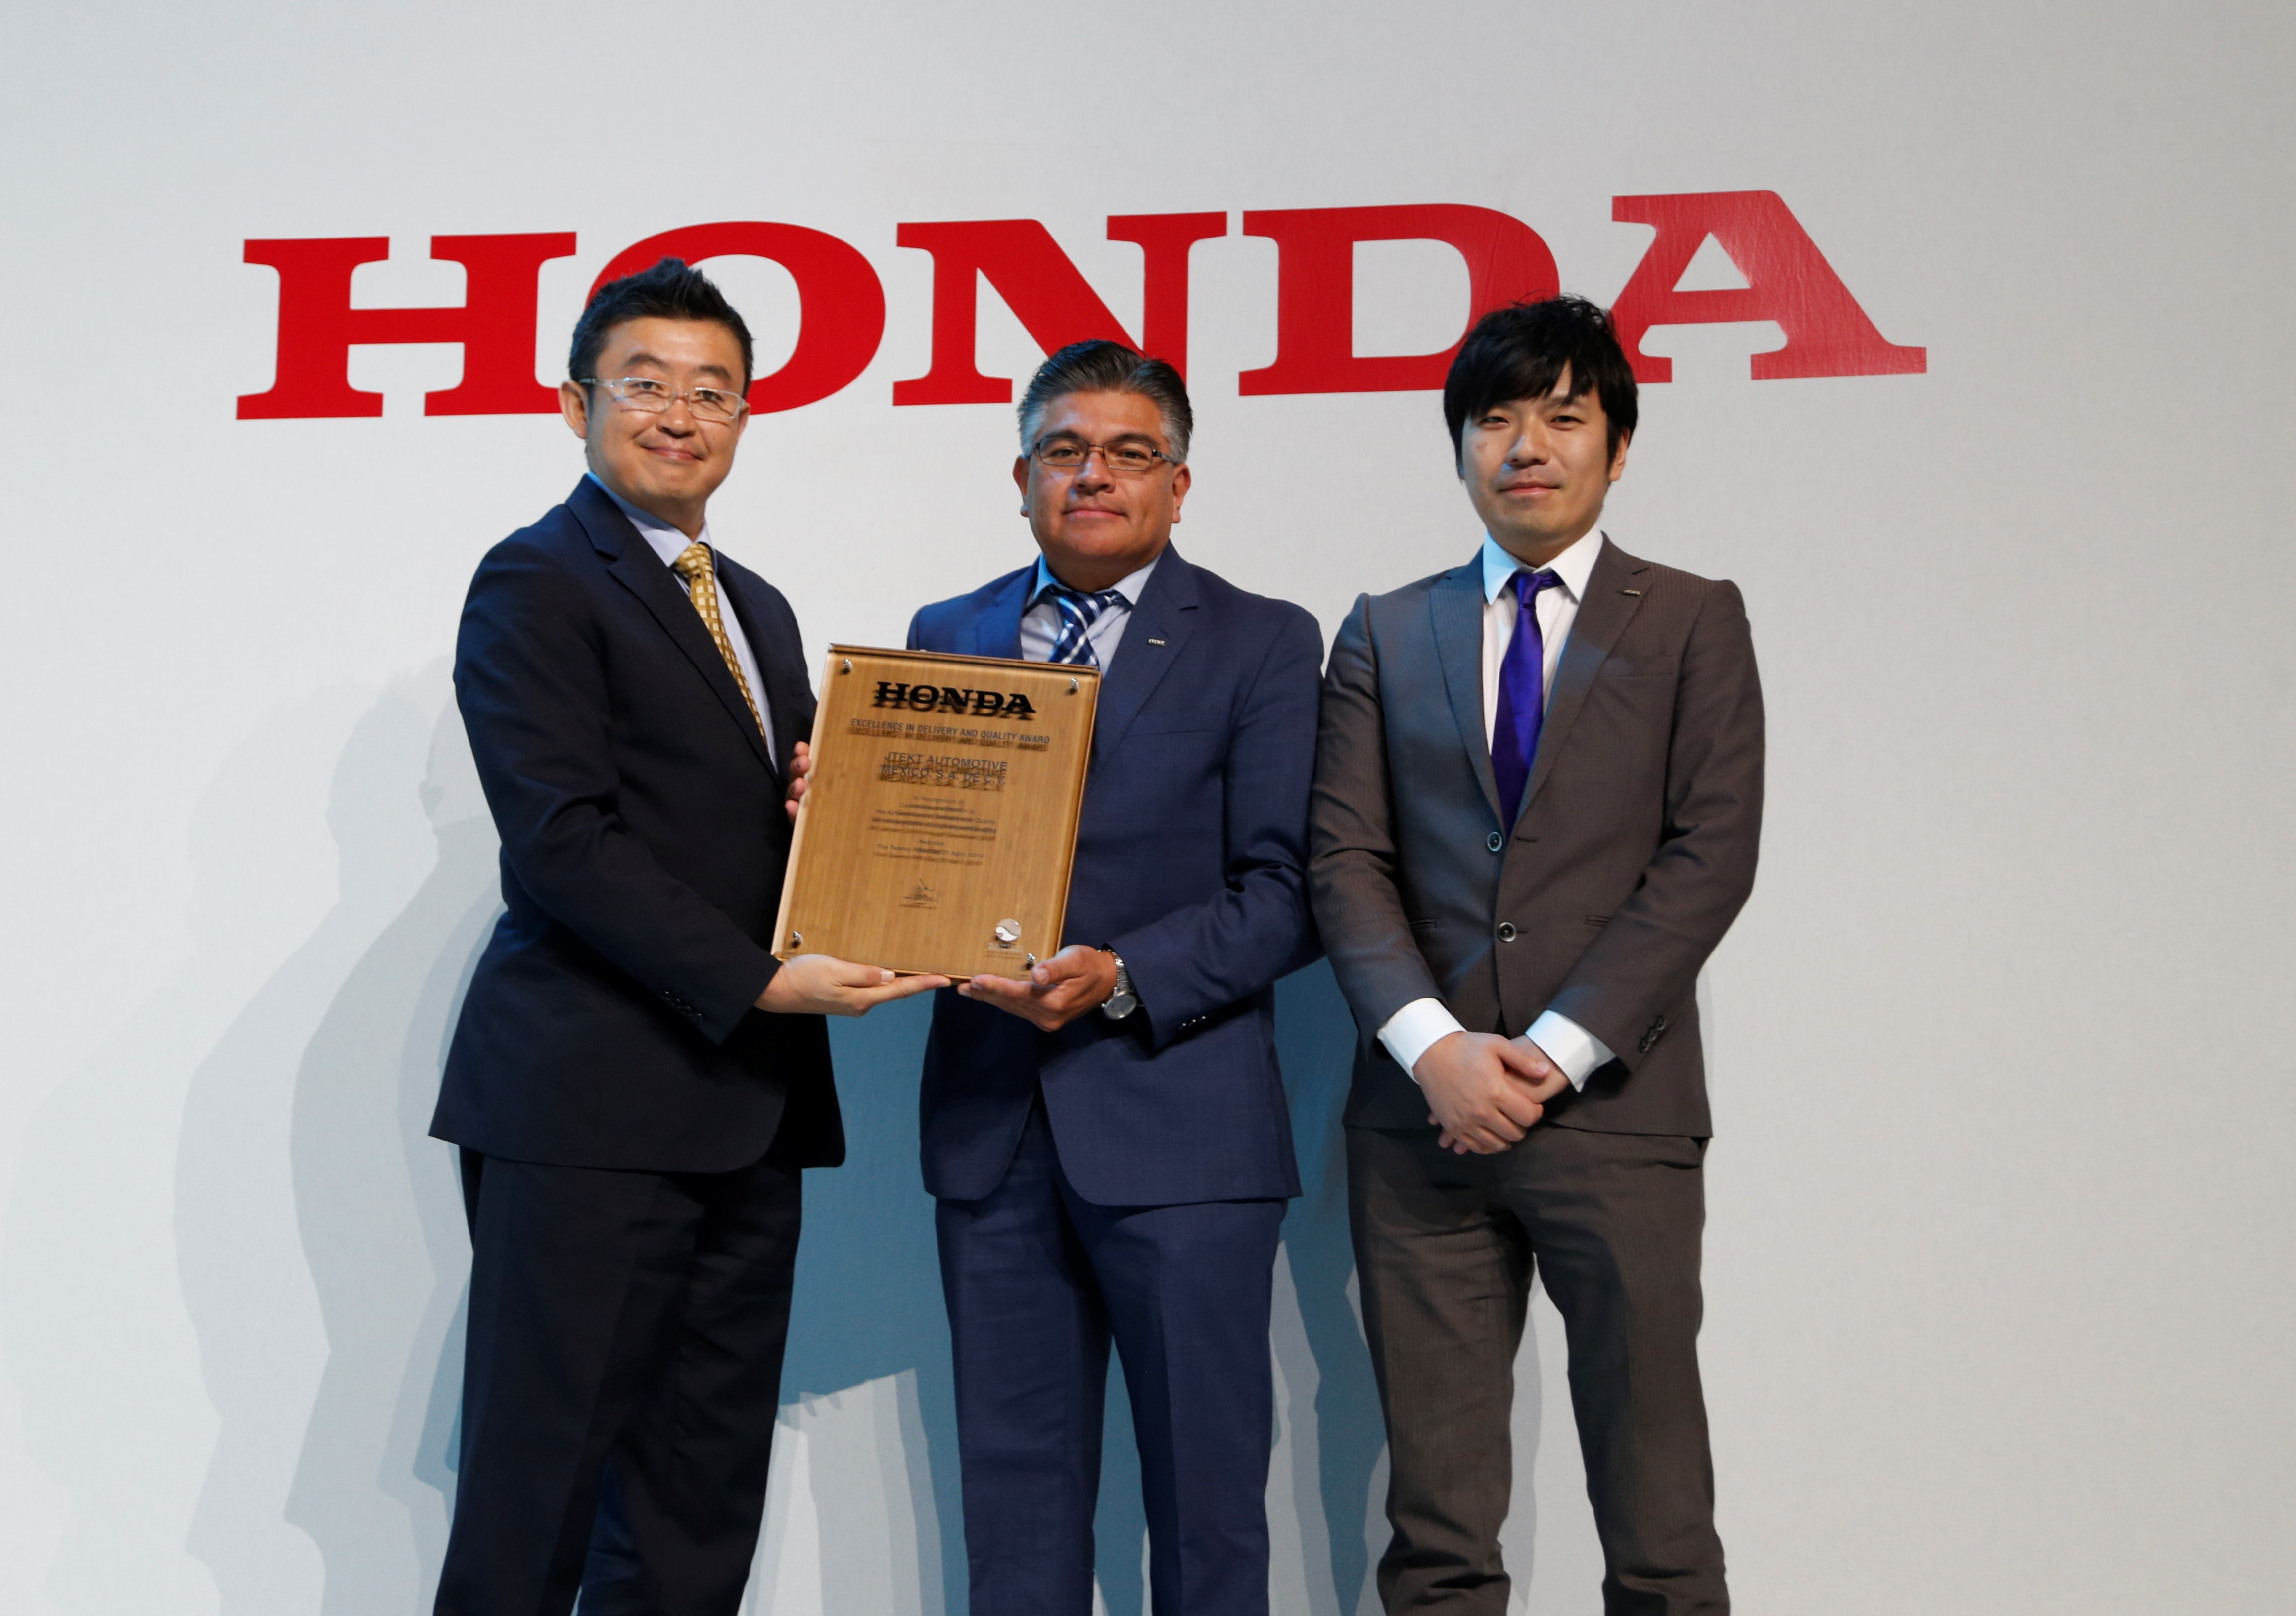 JAMX Plant Manager, Sylvestre Mendoza, at the Honda Supplier Conference